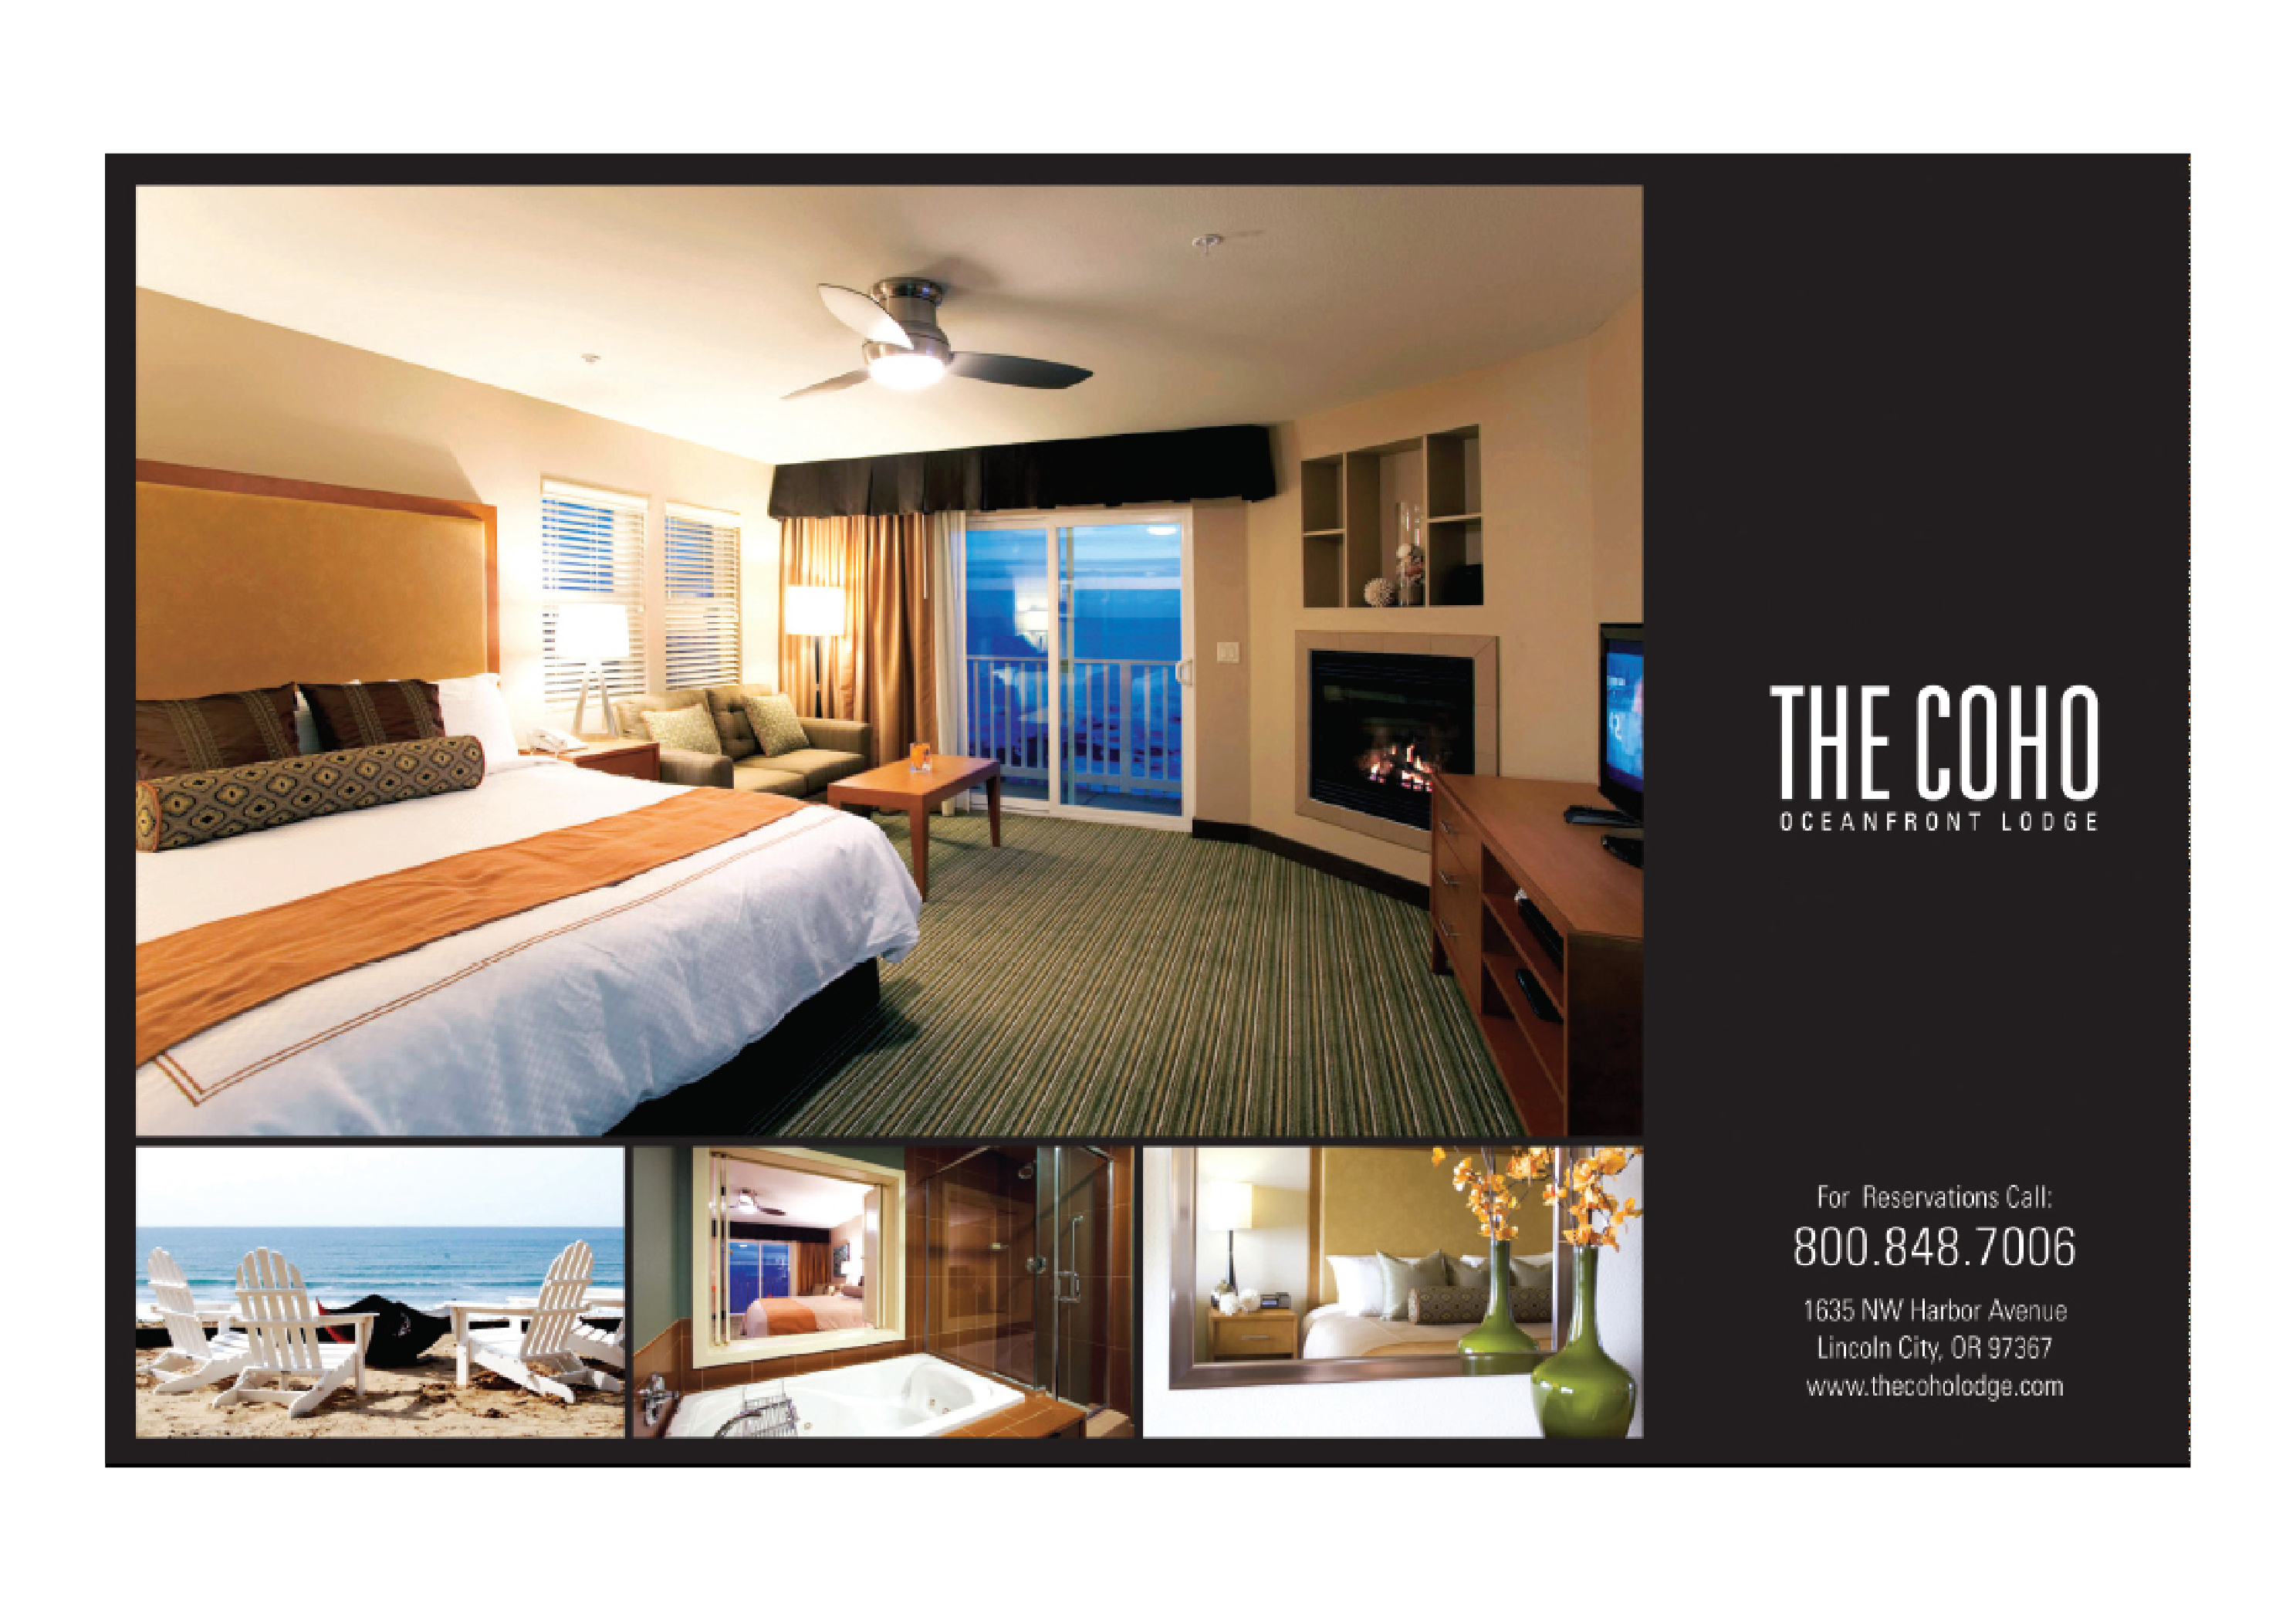 The Coho Lodge Hotel Marketing